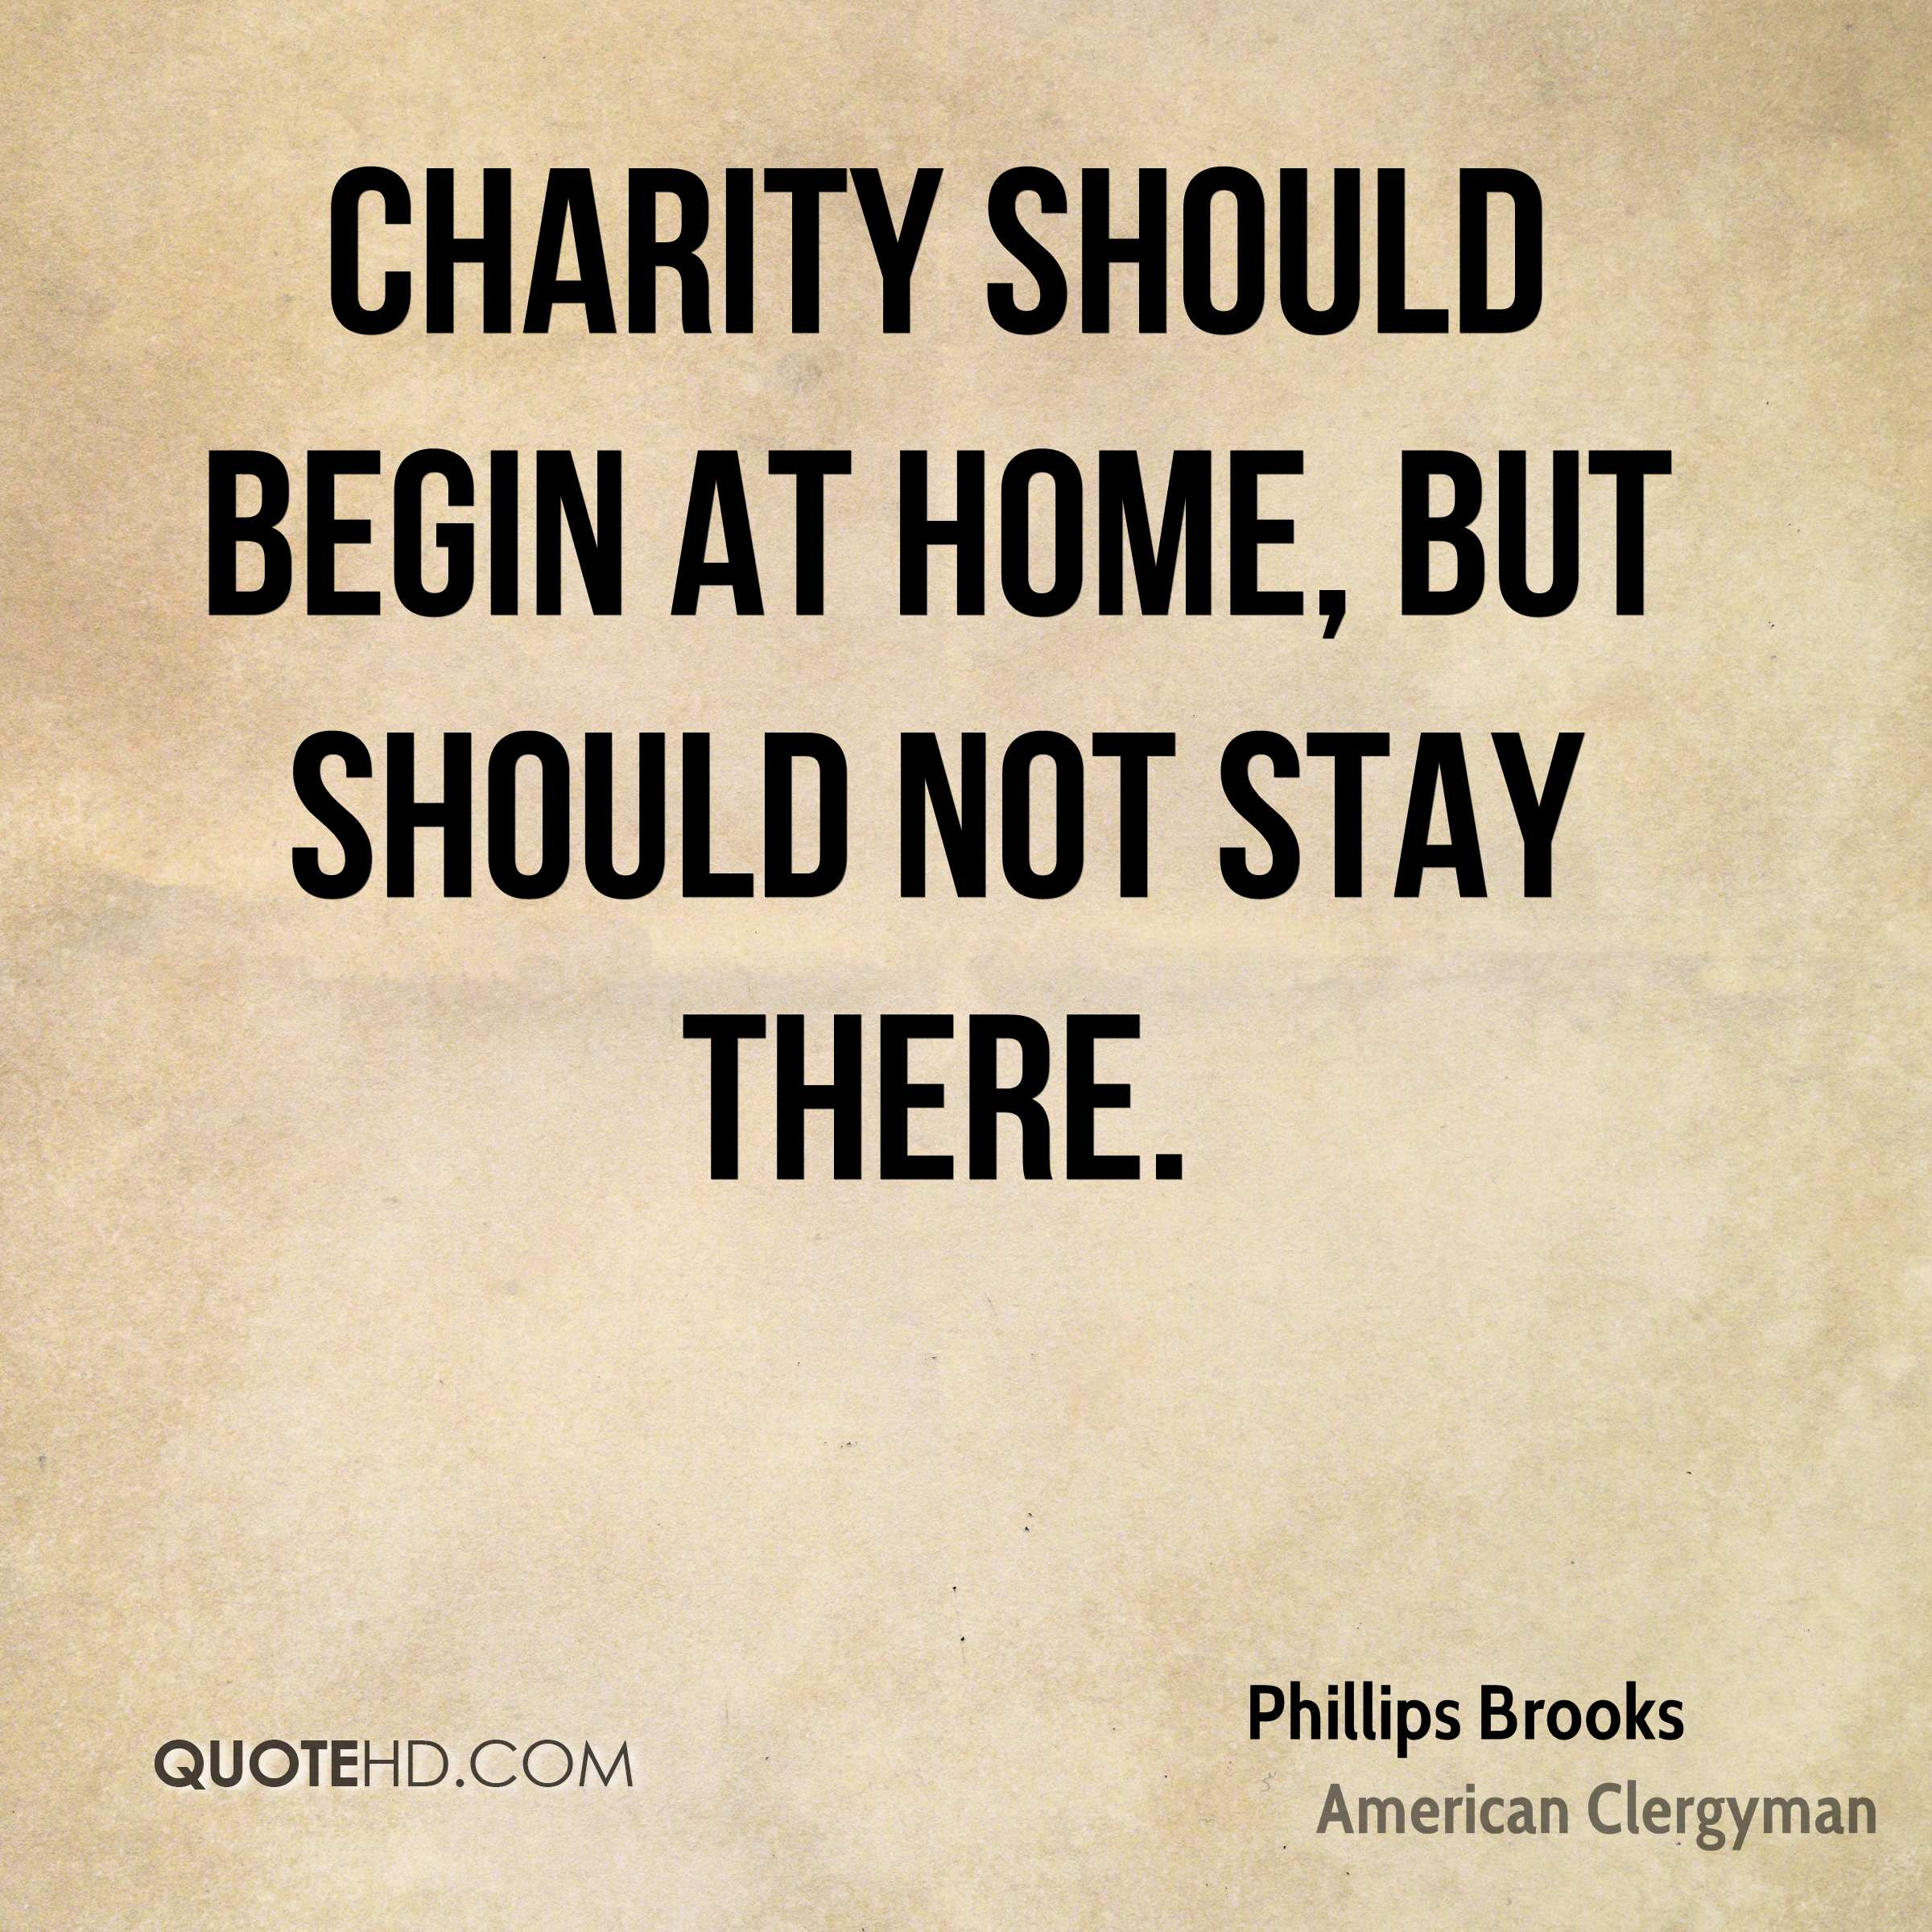 Quotes About Charity Simple Phillips Brooks Home Quotes  Quotehd